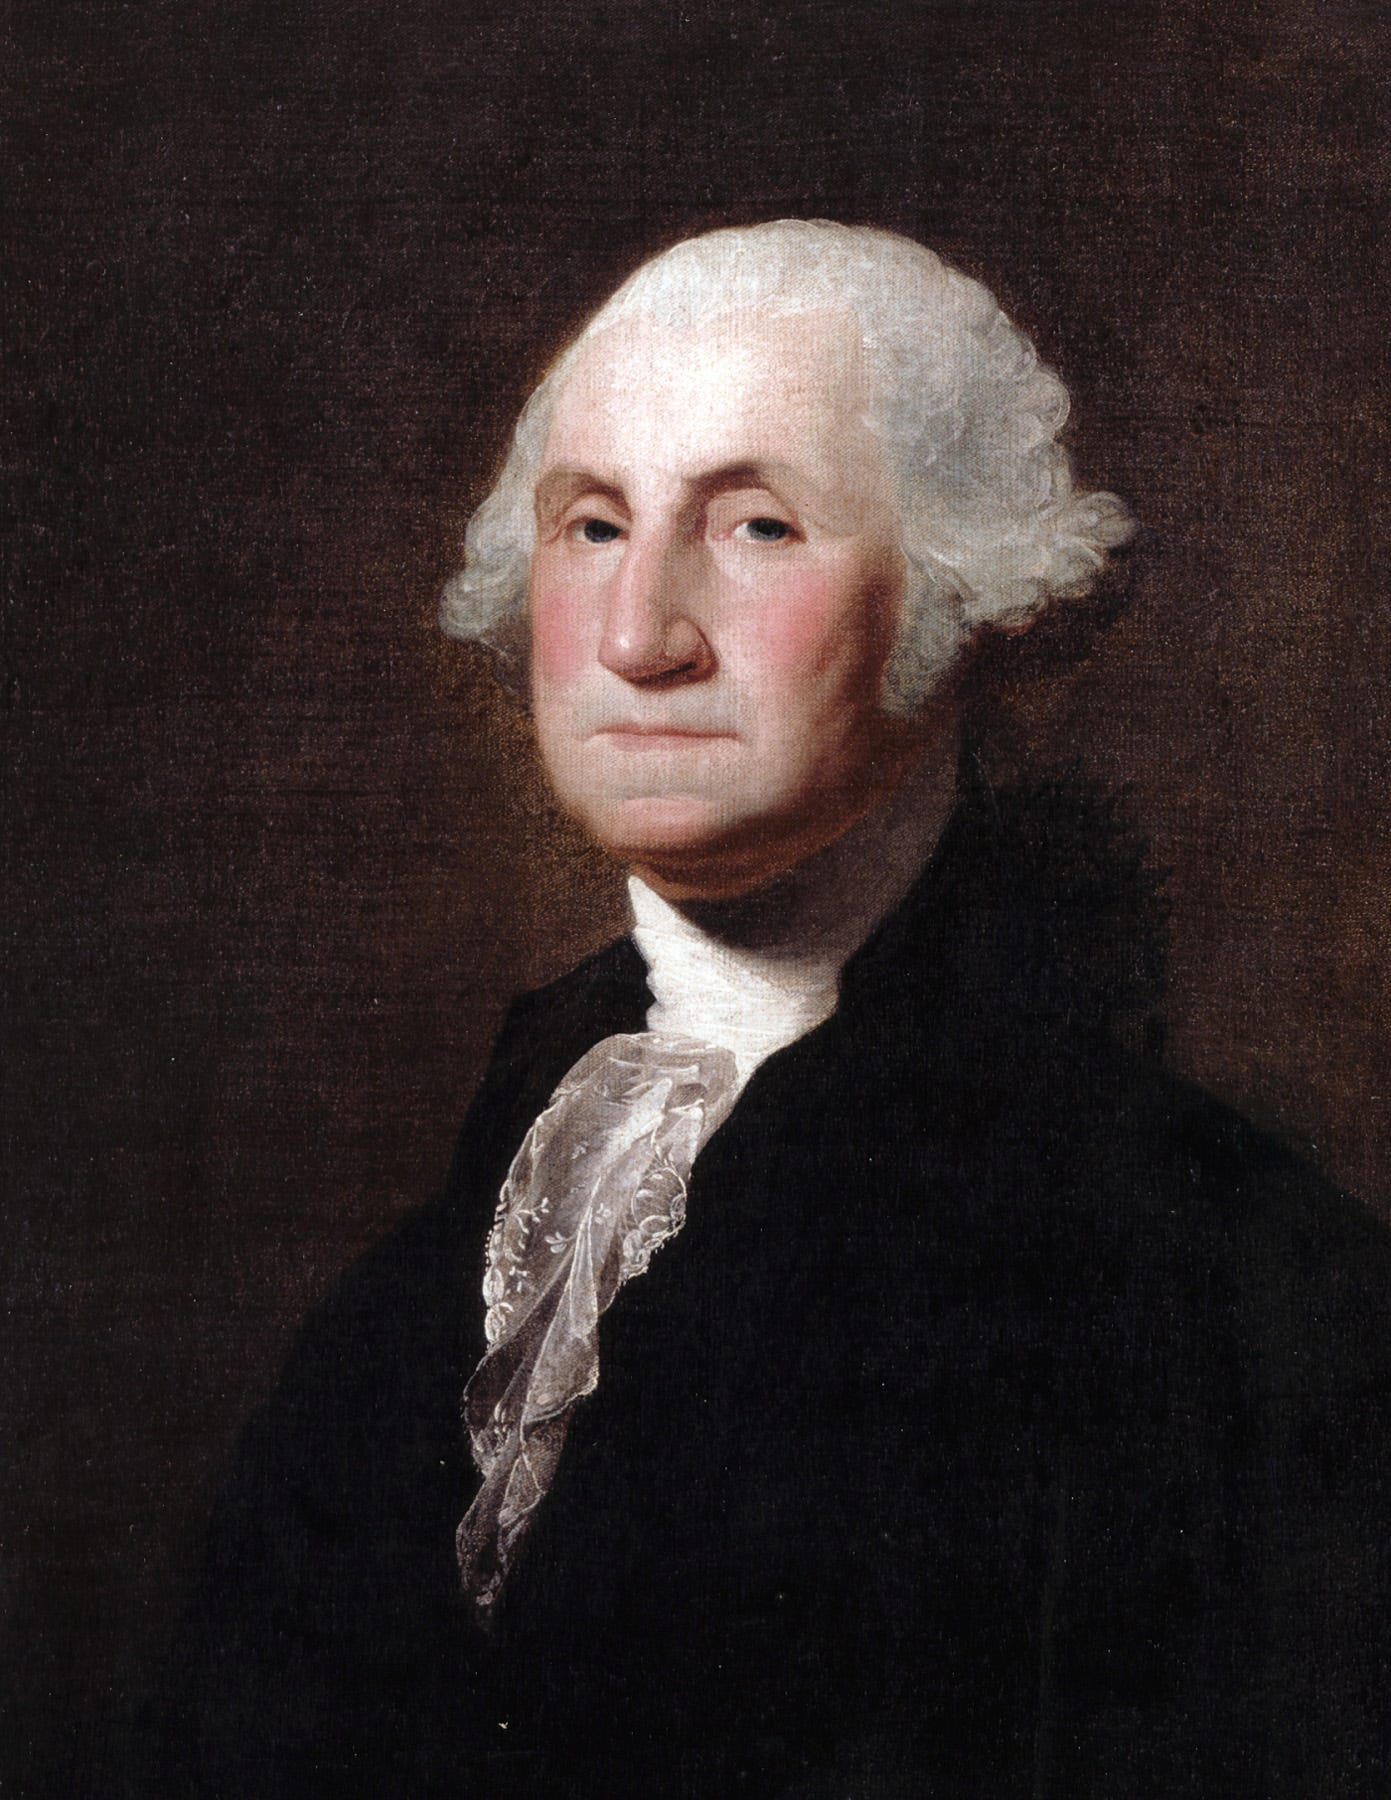 2020 America is still vulnerable to the dangers George Washington warned of in 1797